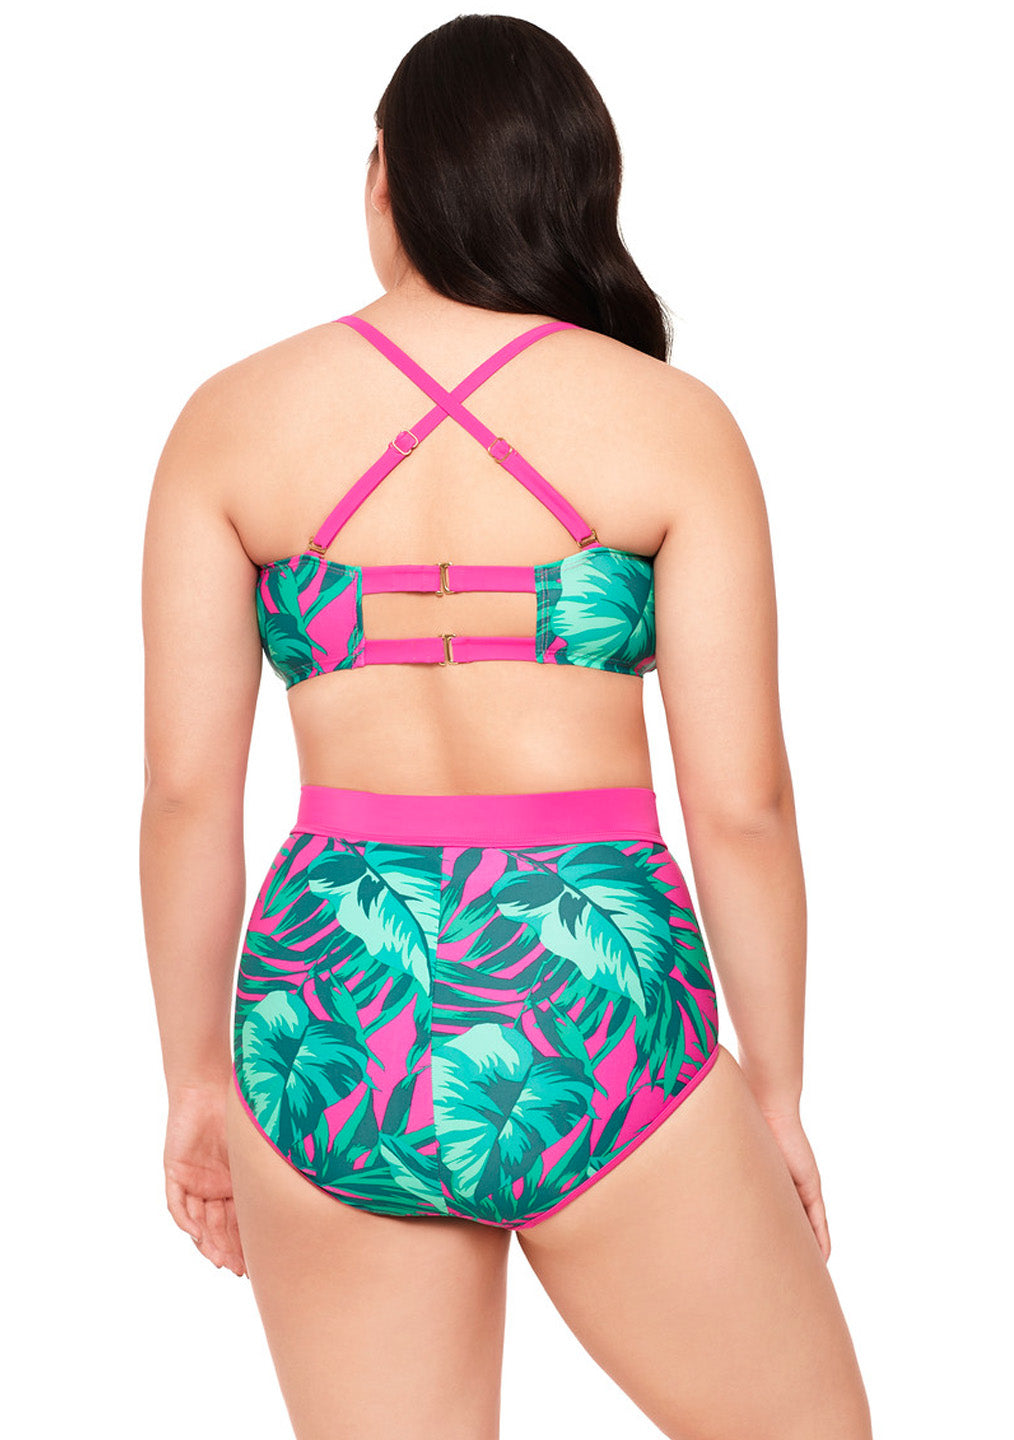 Bahama Mama Multi-Way Twist Bikini Top